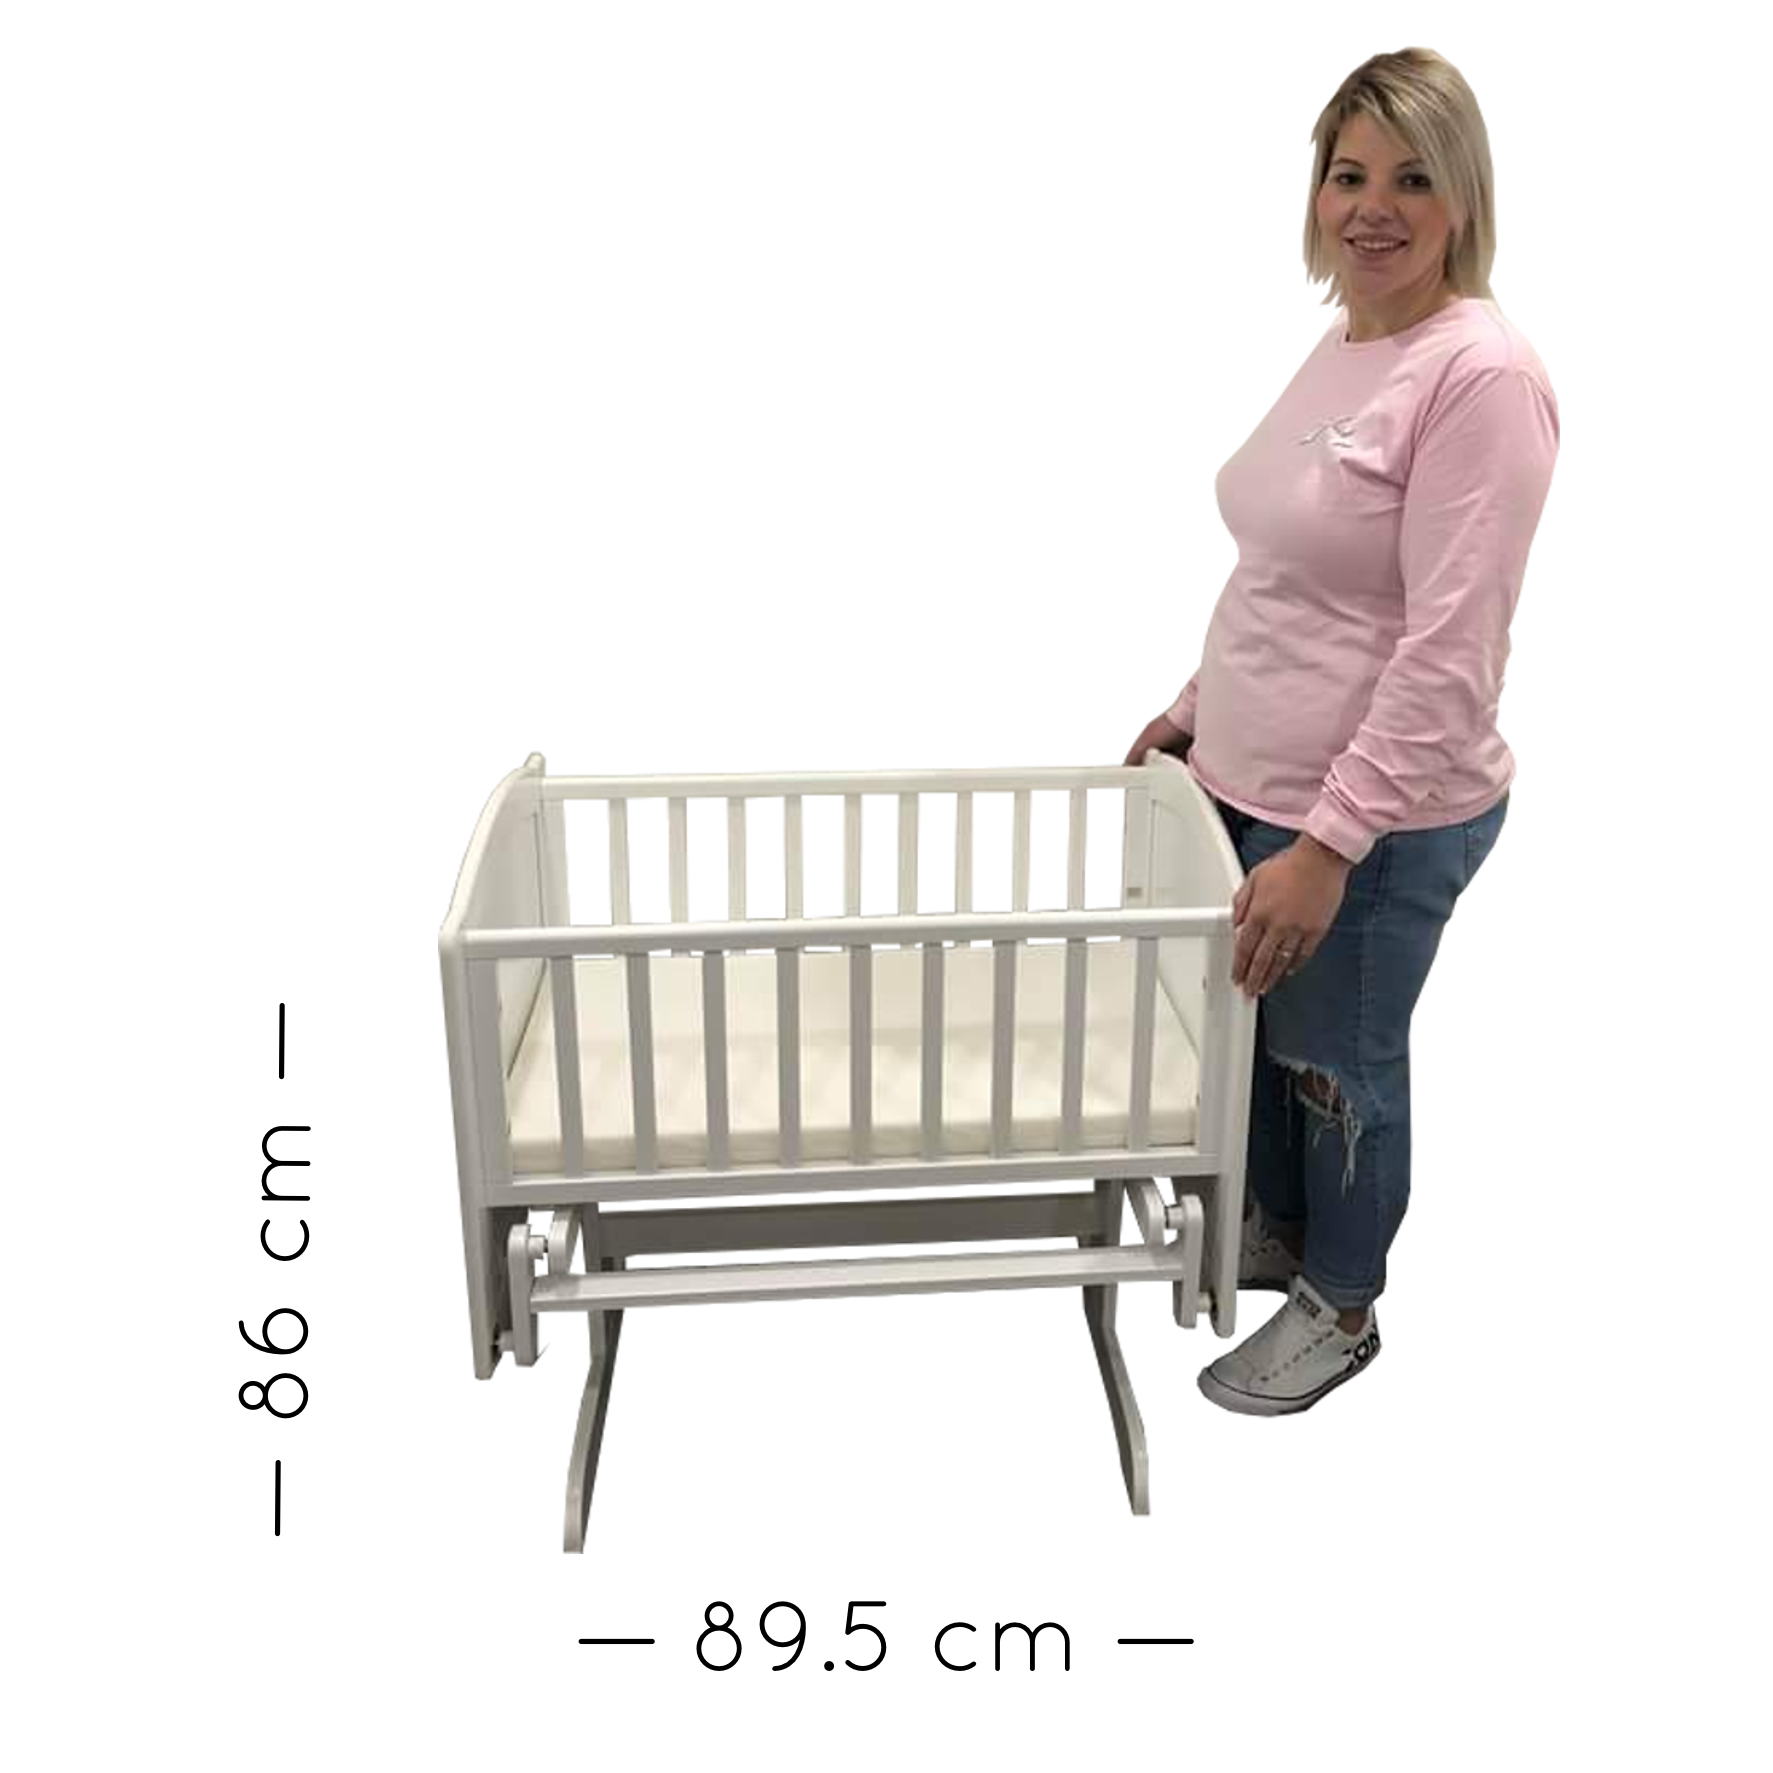 Rocking Cradle with Mattress. With Dimensions.